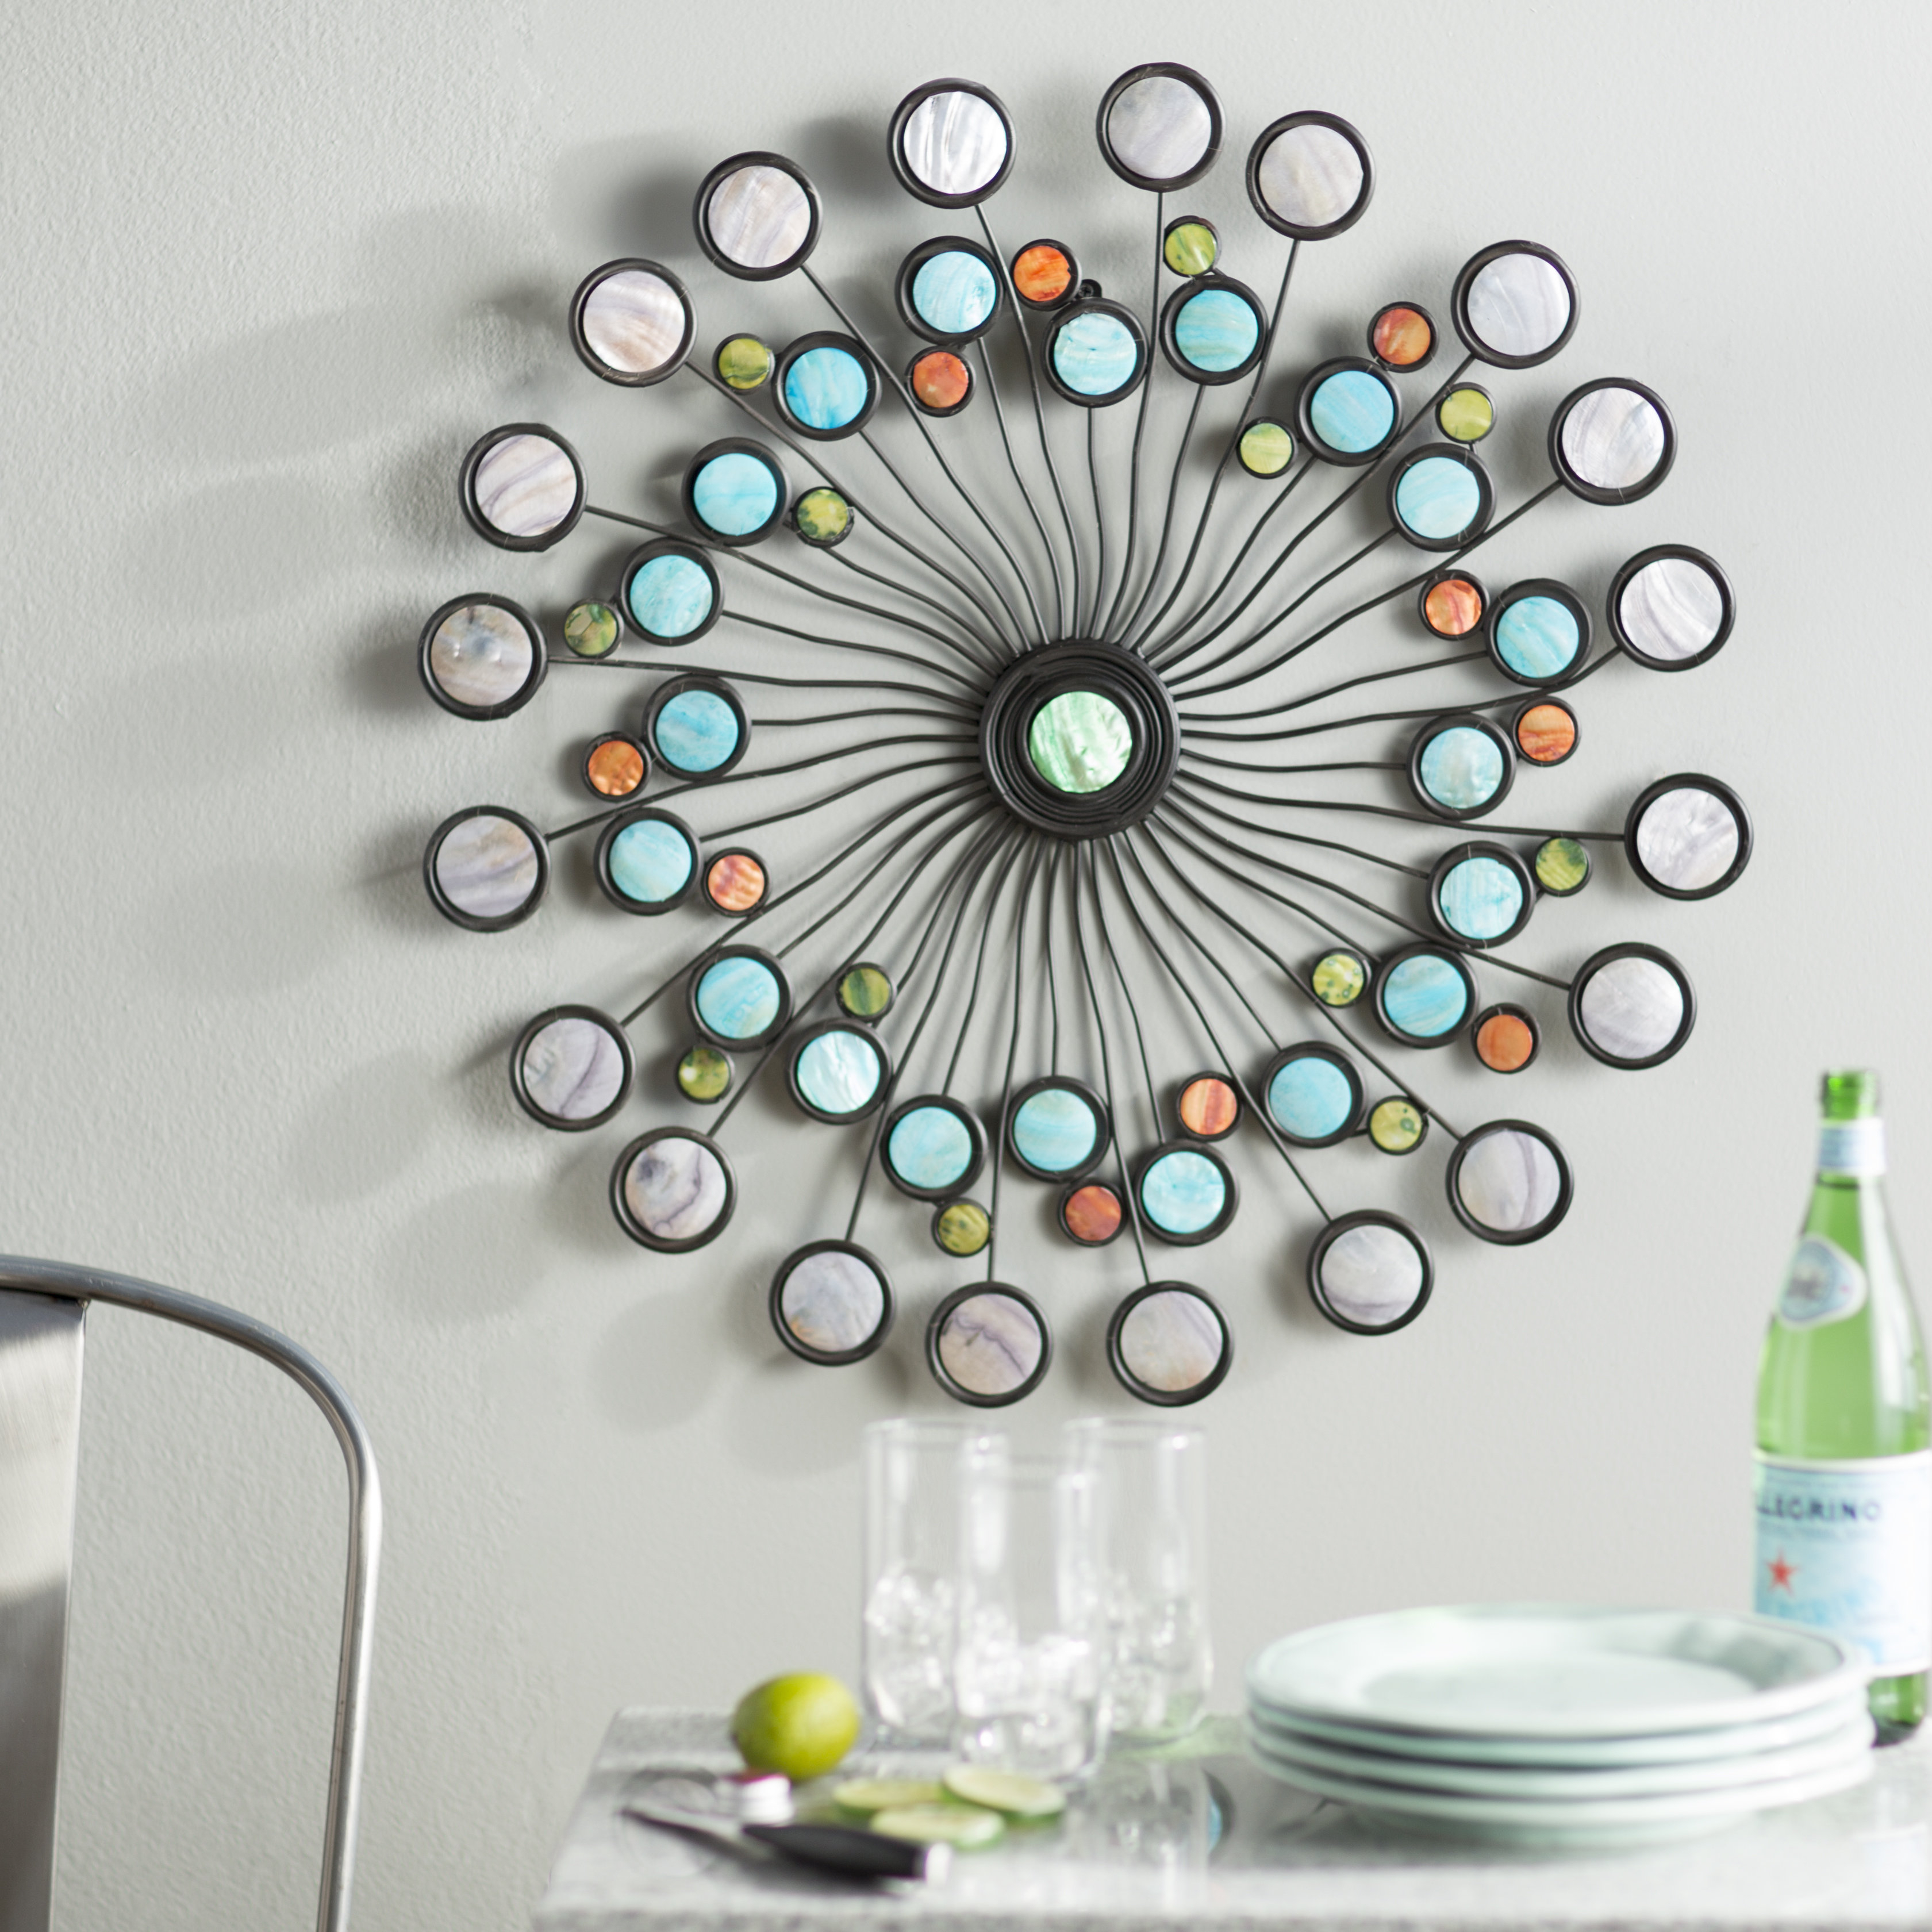 Wayfair Intended For Well Liked Raheem Flowers Metal Wall Decor (View 17 of 20)